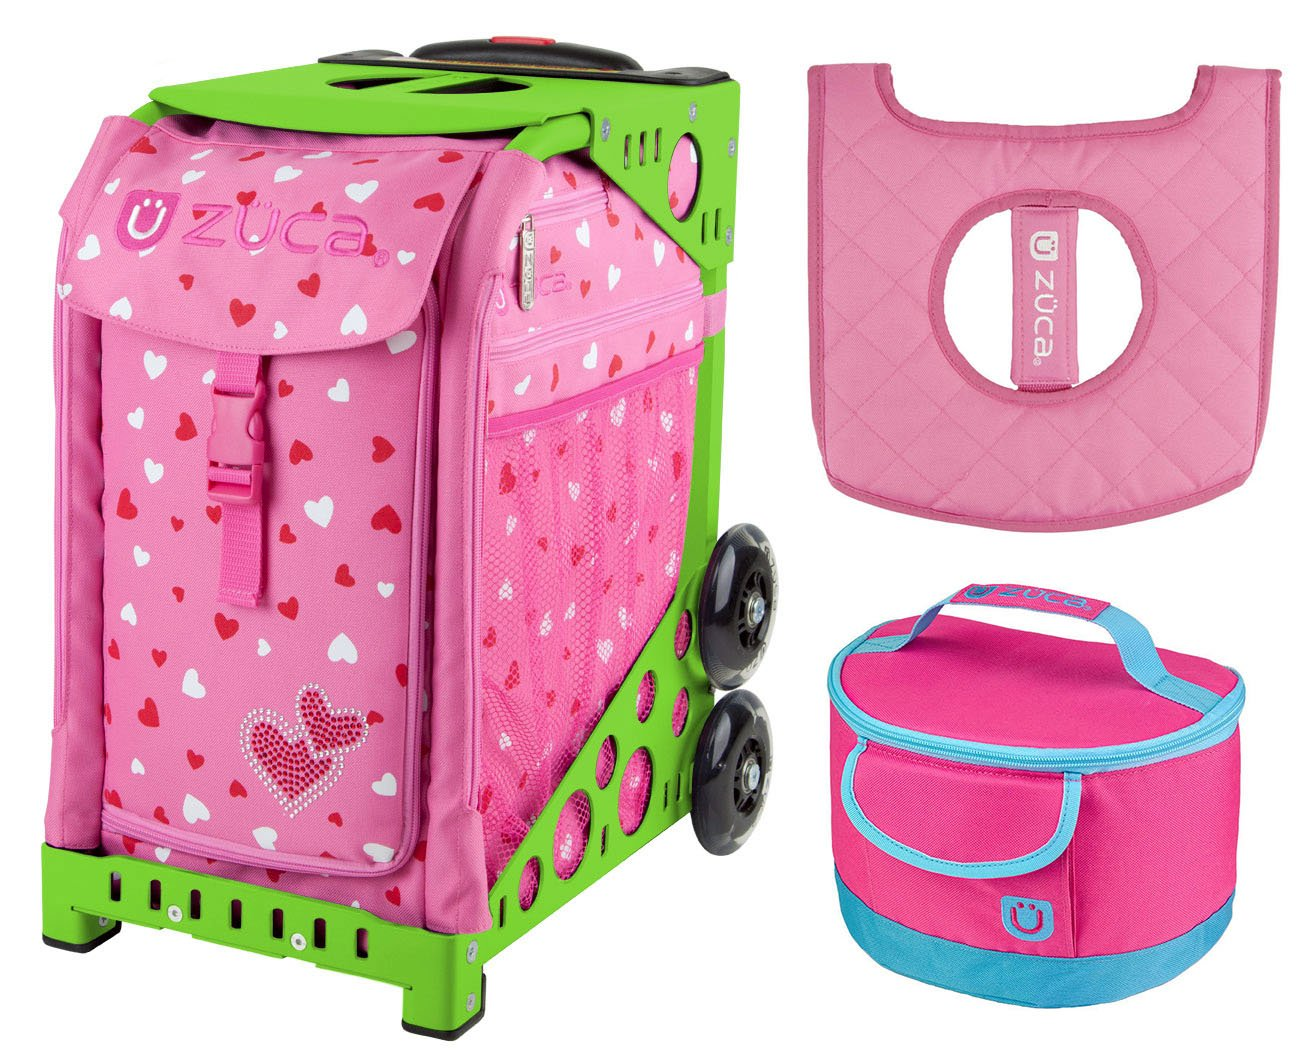 Zuca Sport Bag - Sweet Heartz with gift Lunchbox and Seat Cover (Green)